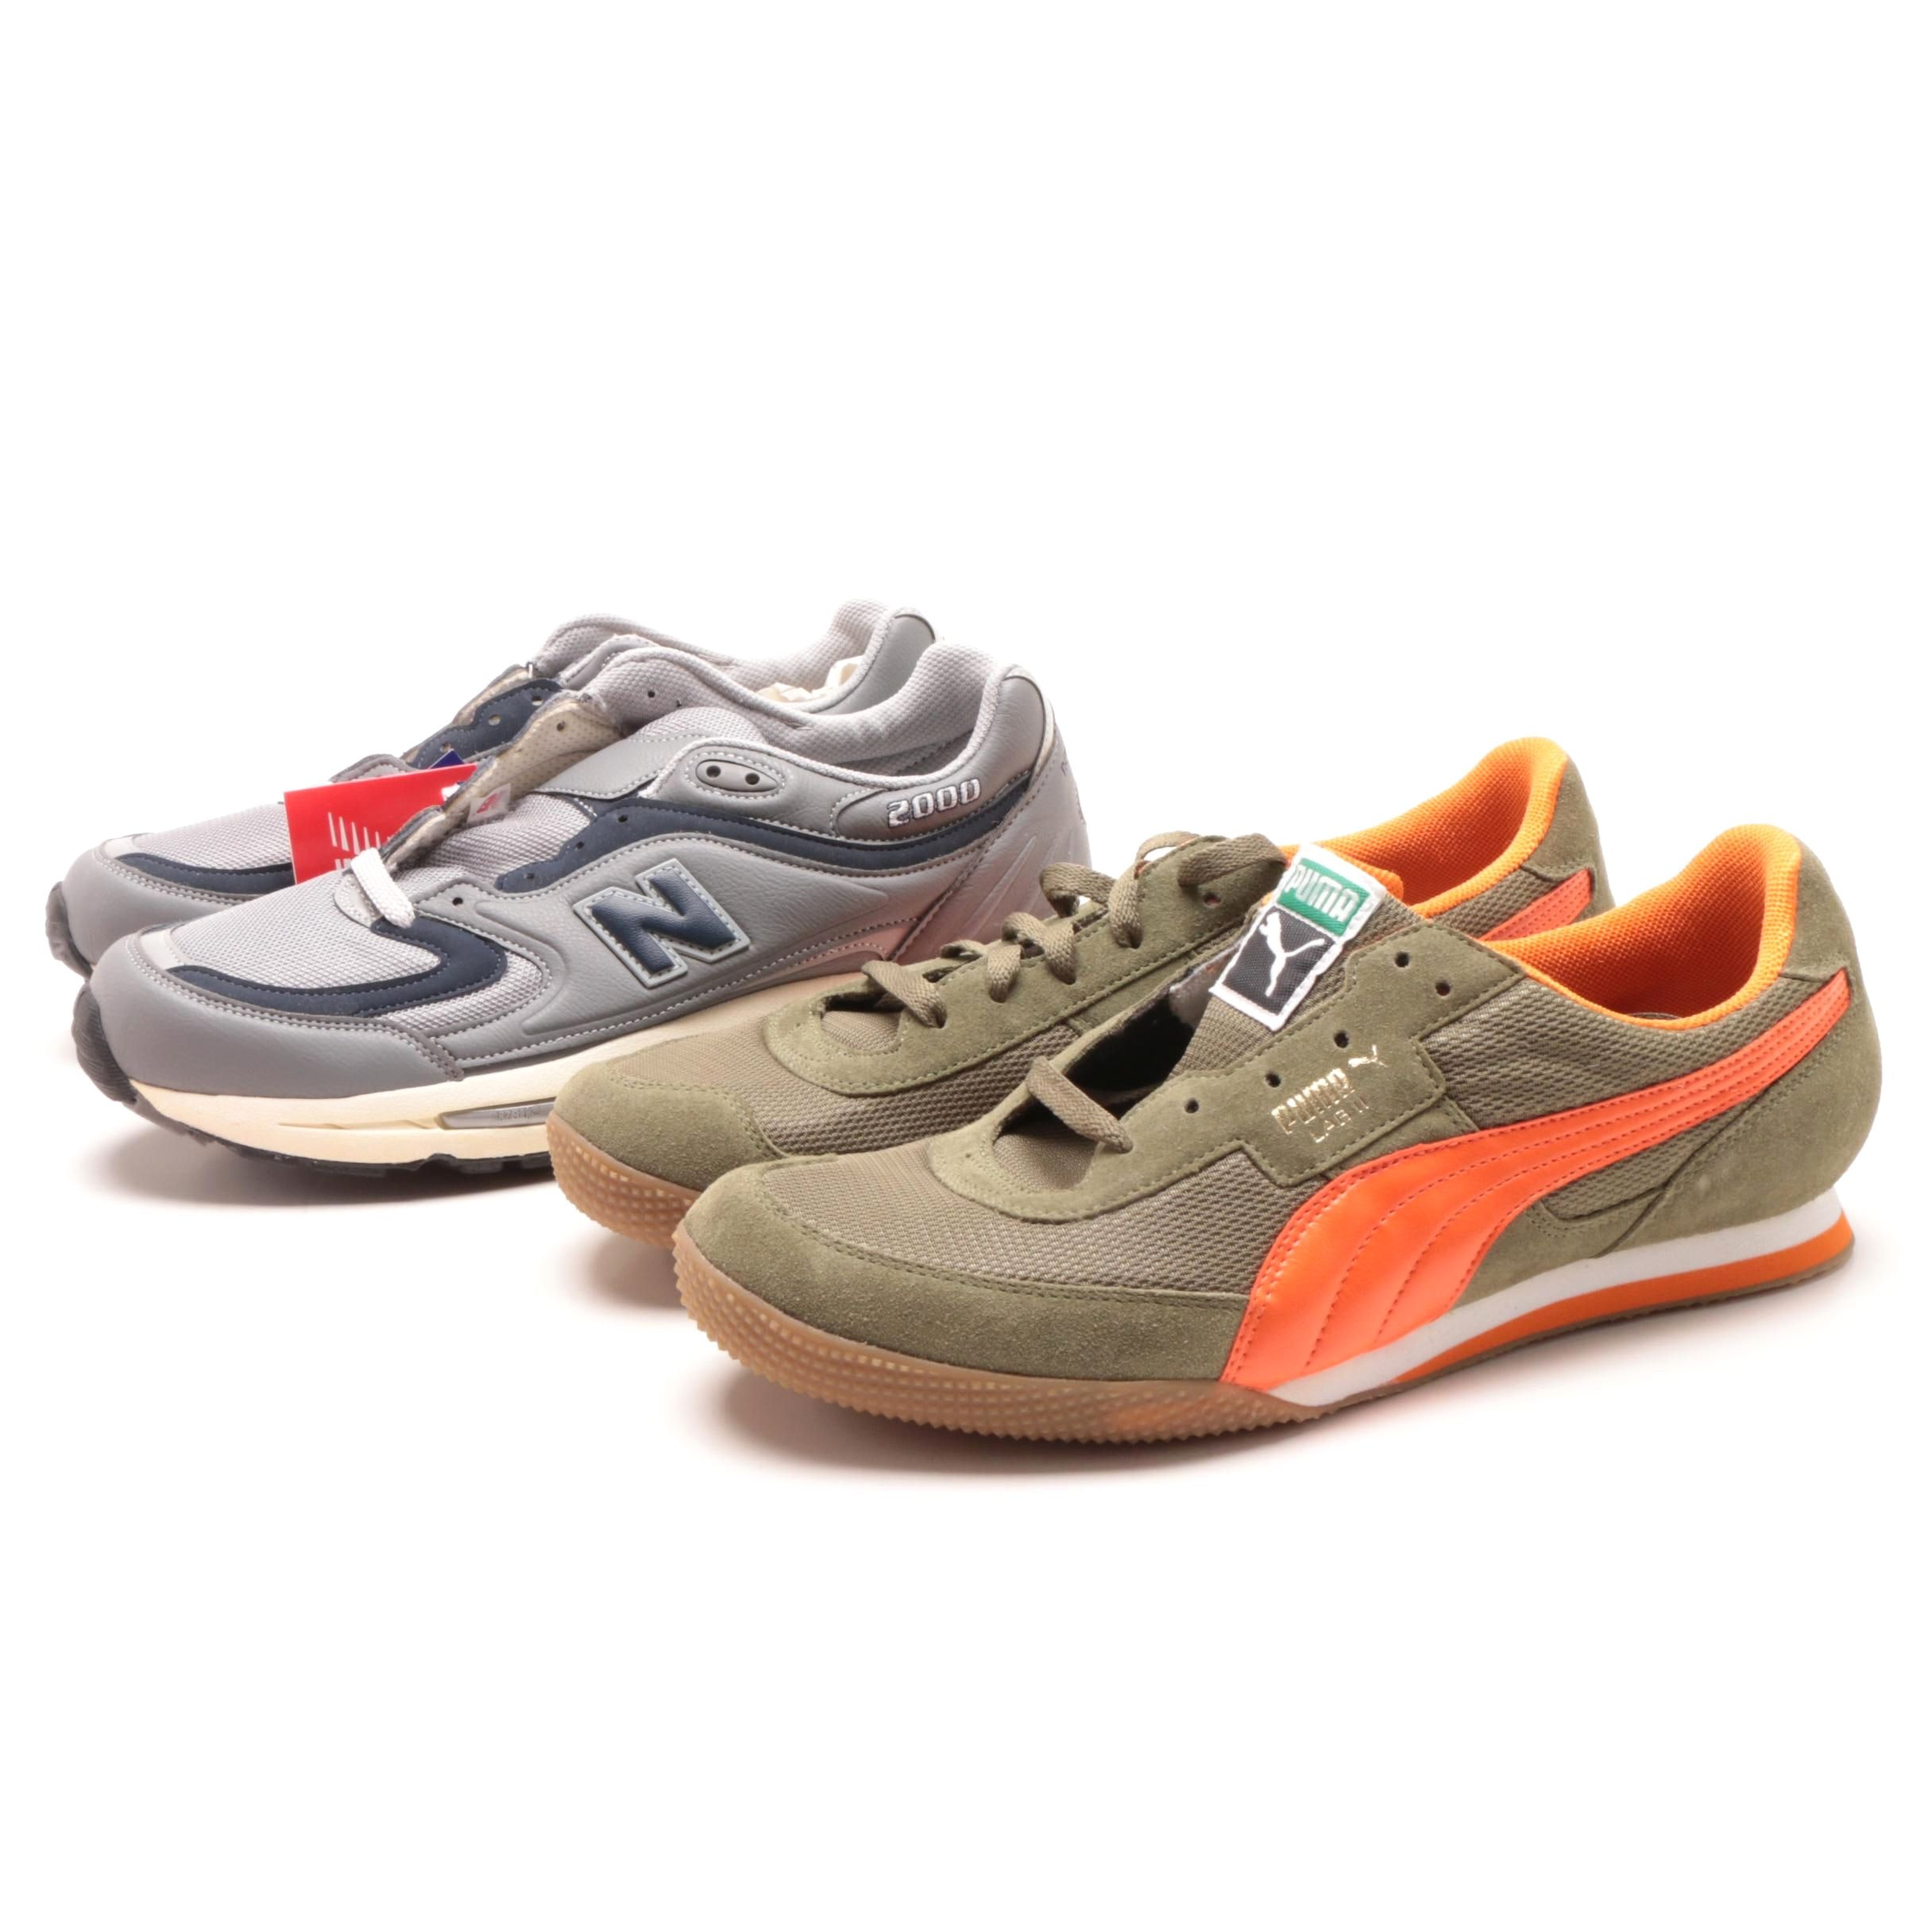 Men's Sneakers Including New Balance and Puma